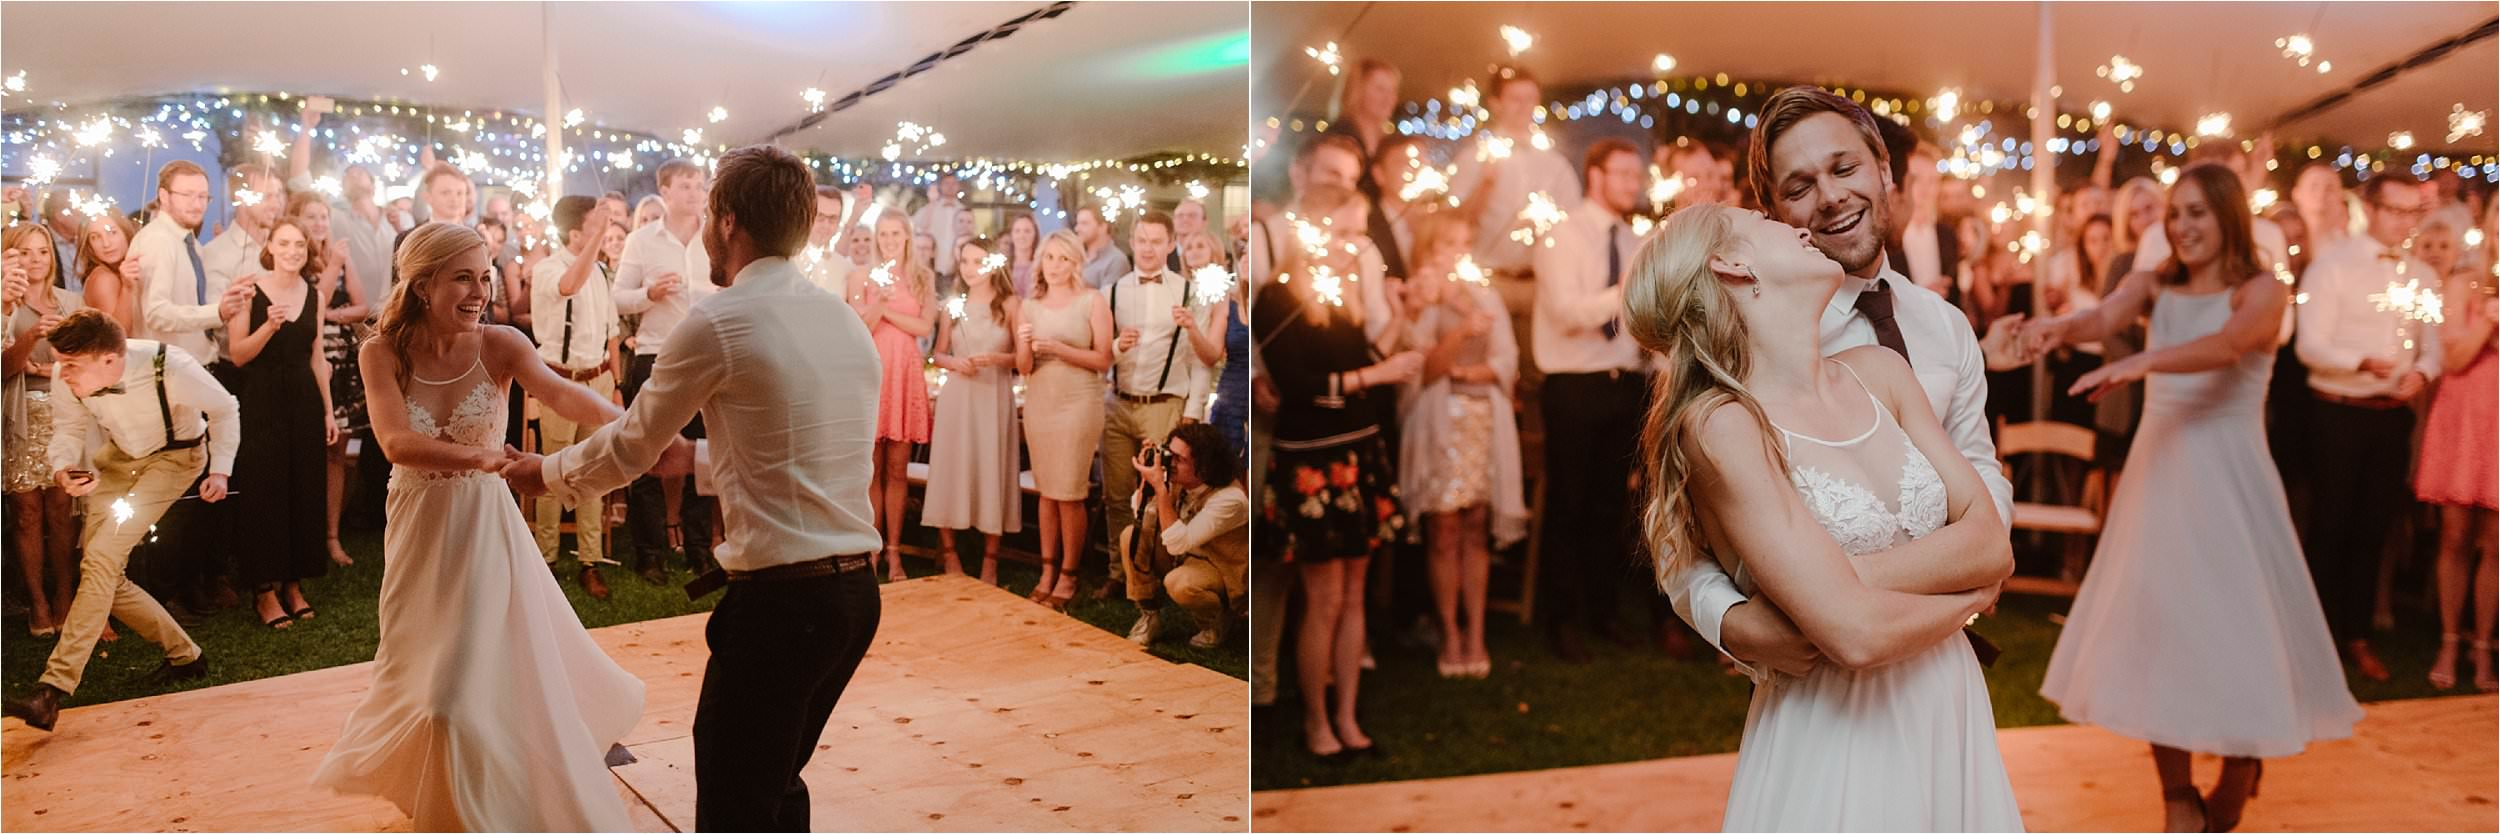 A bride and groom dancing stylishly to the best DJ.